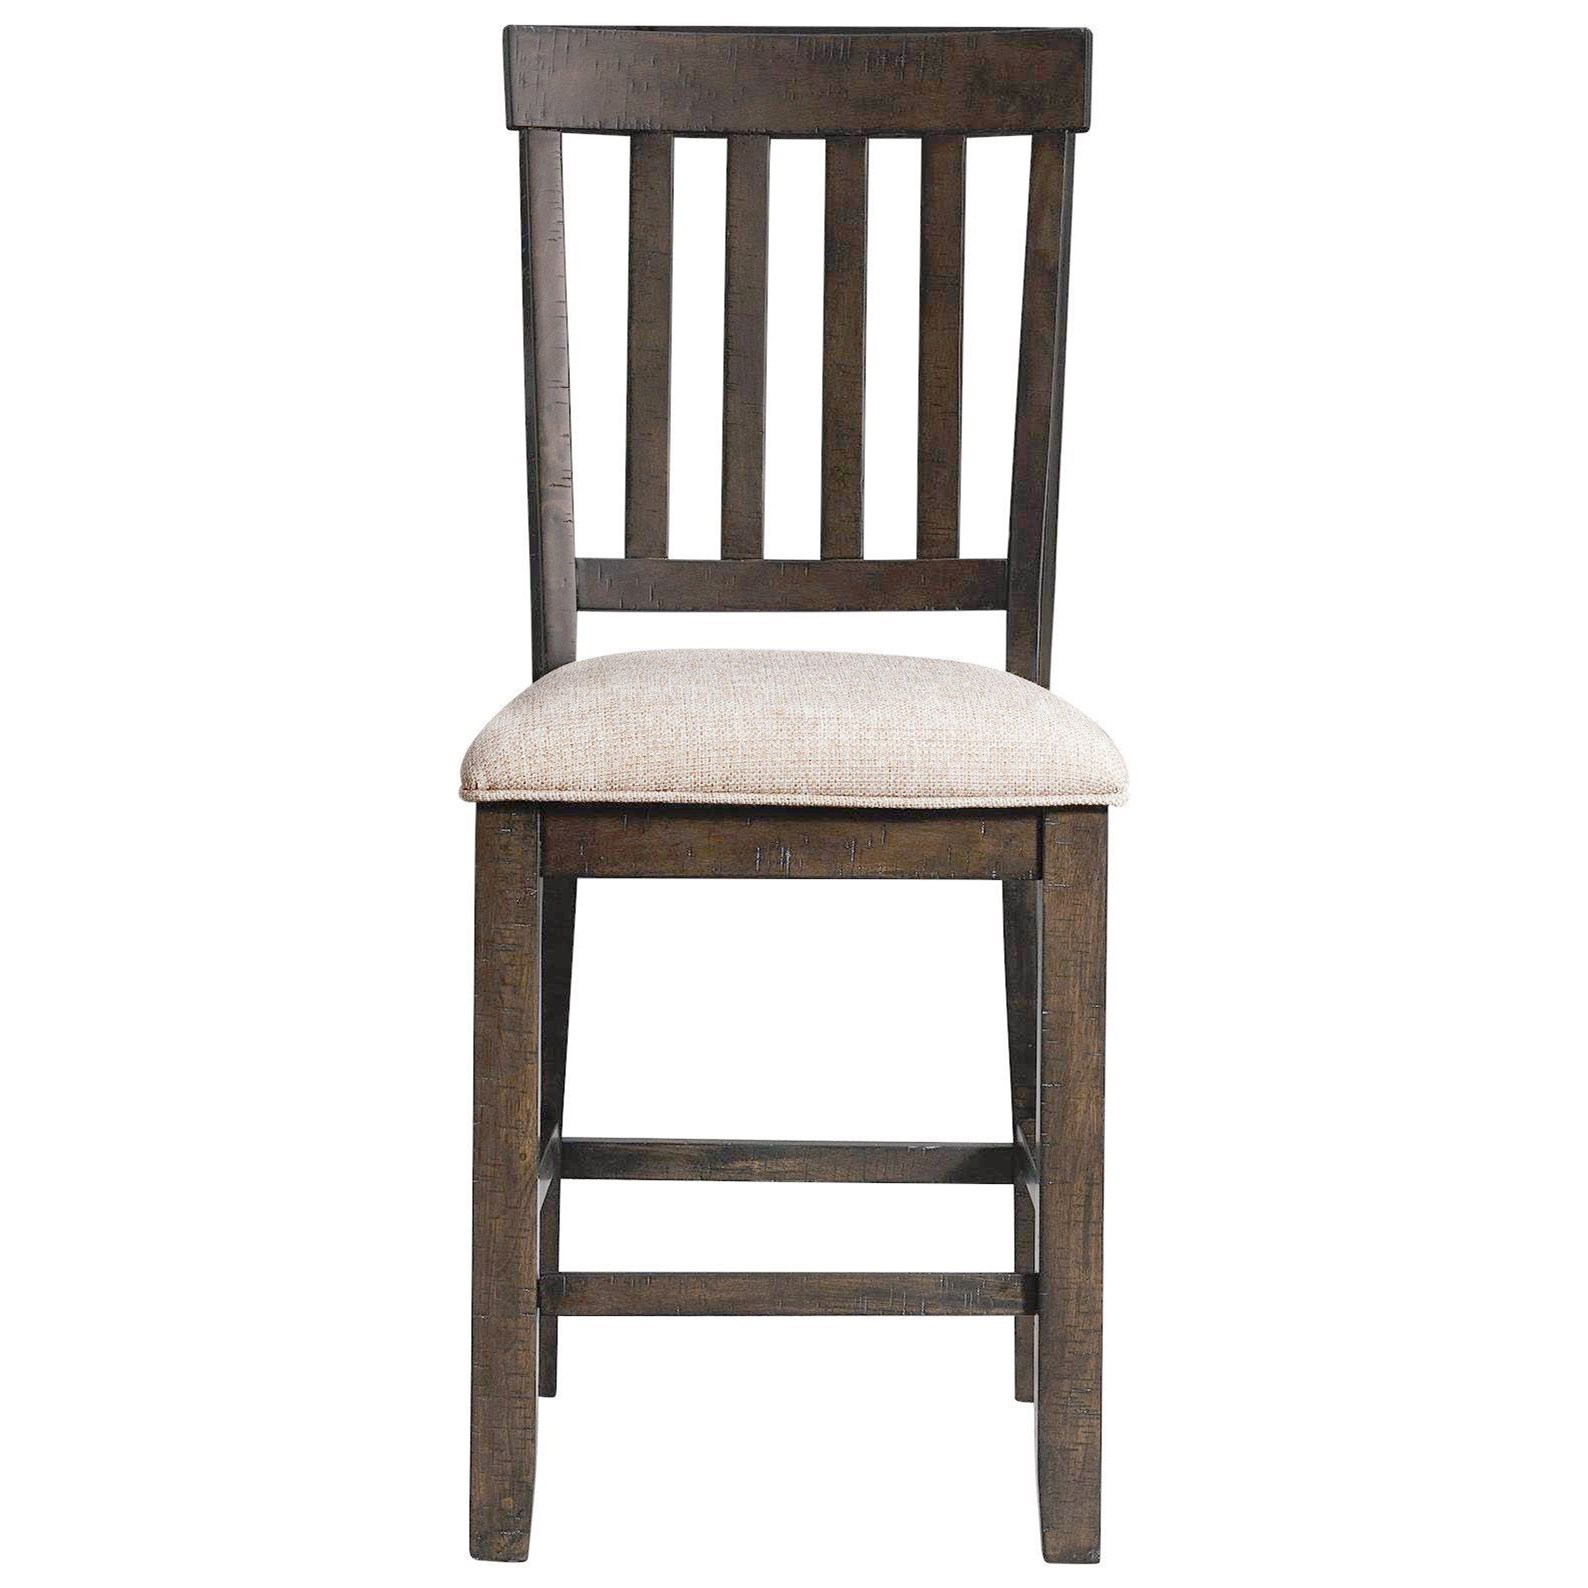 Stone Counter Dining Chair Slat Back Set by Elements International at Dream Home Interiors